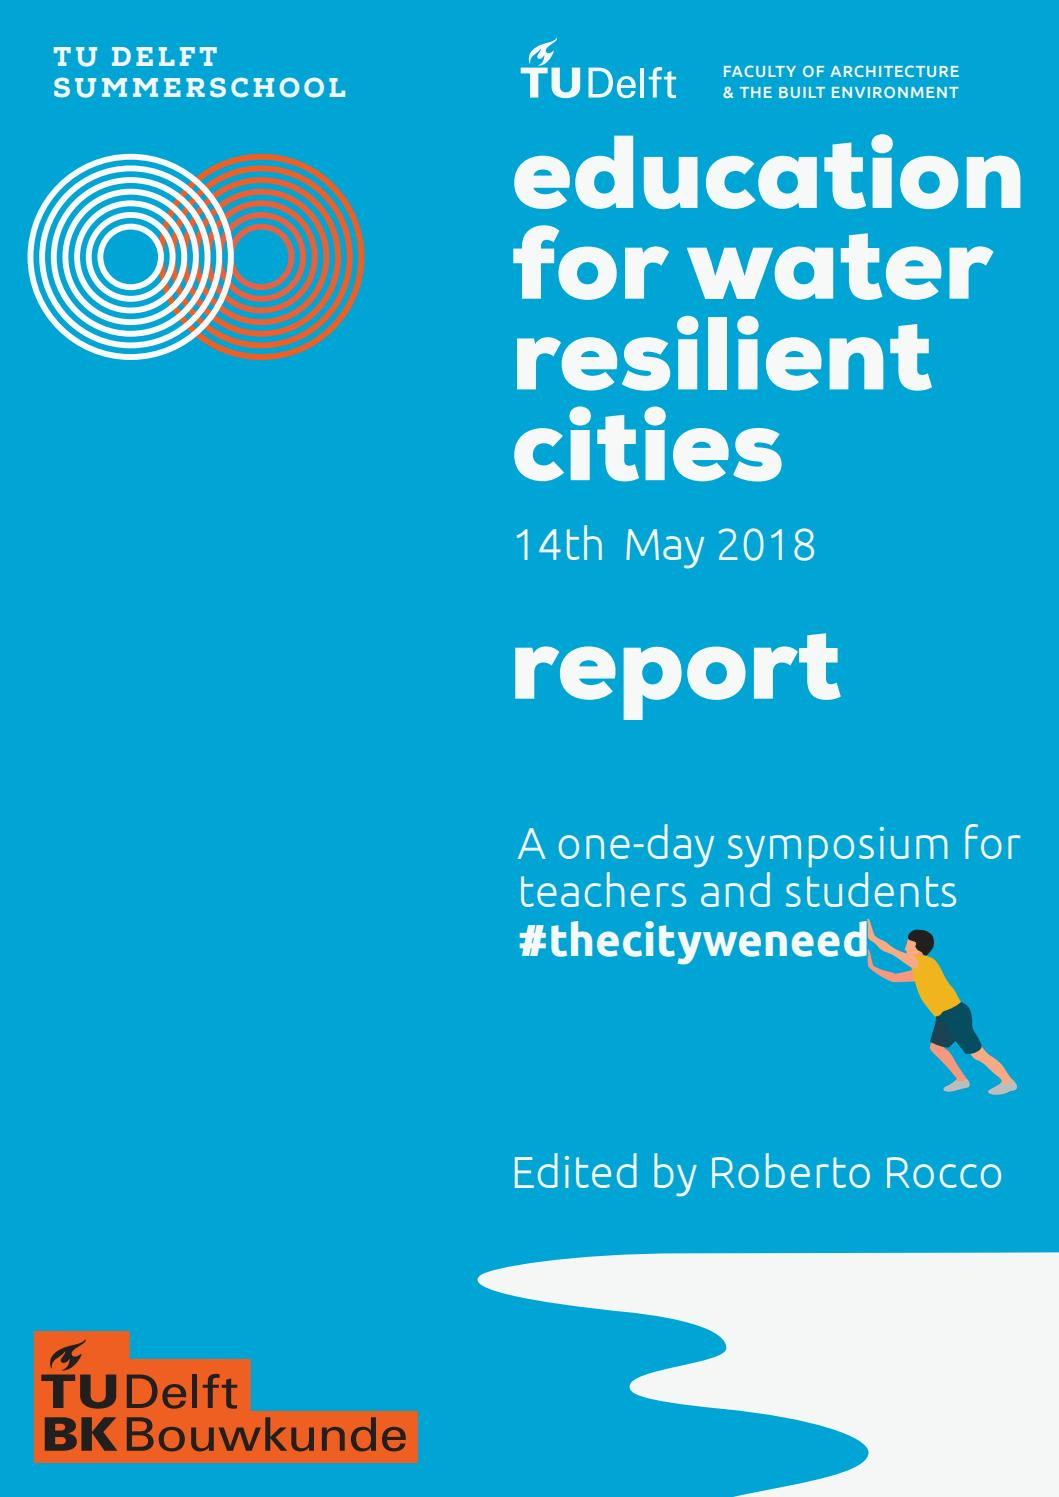 Symposium Education For Water Resilient Citiesroberto Rocco - Issuu throughout Tu Delft Time Table Boukunde 2020